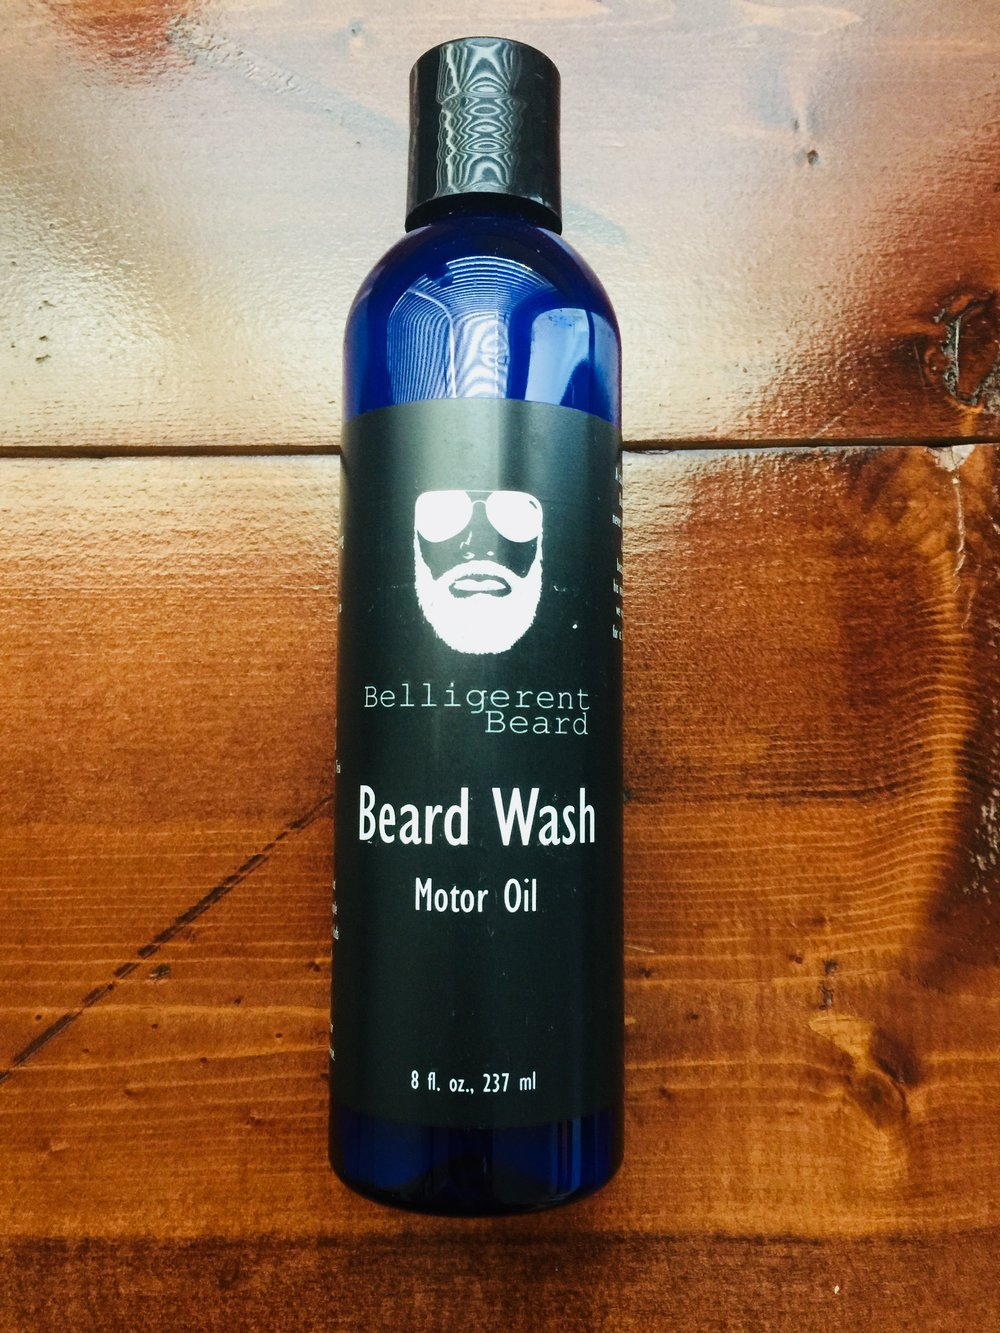 Motor Oil Beard Wash